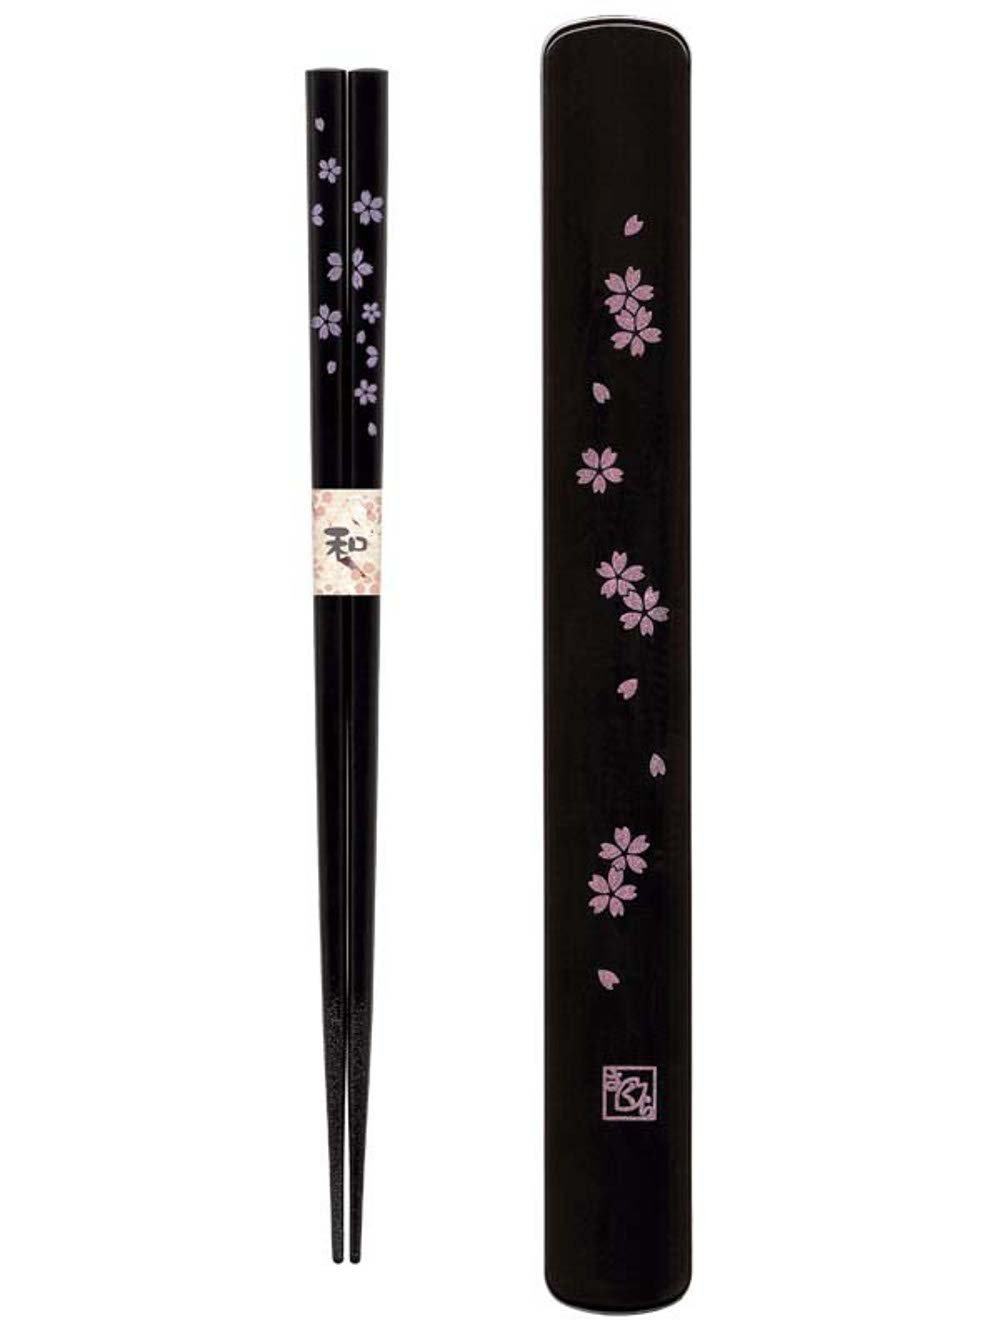 Travel chopstick with case (black pink sakura cherry blossom)